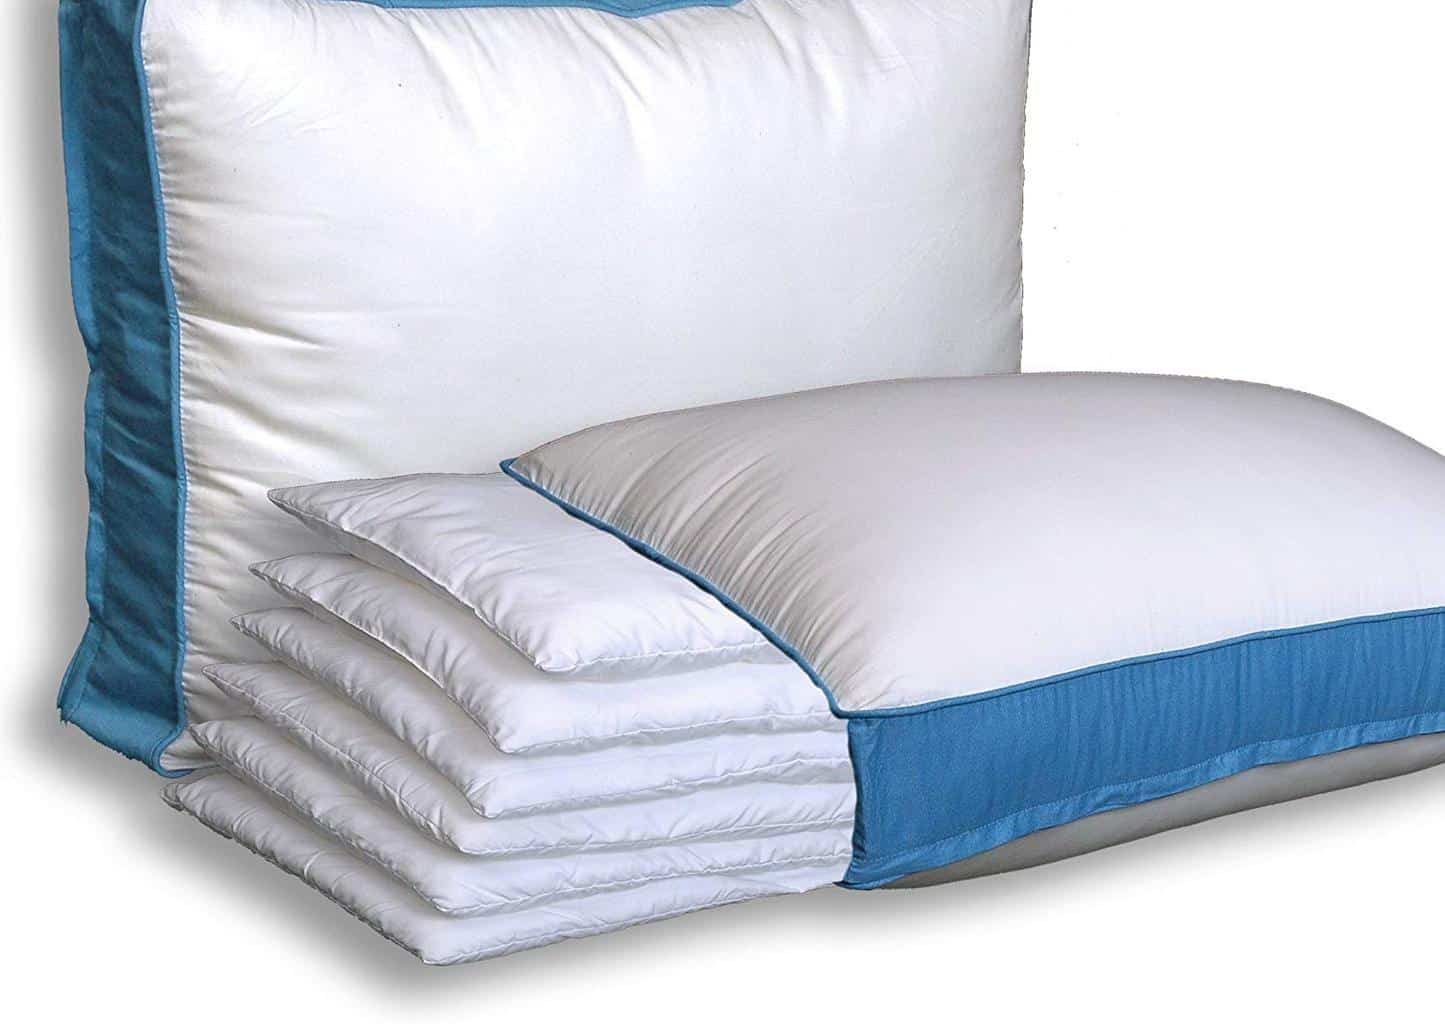 We have put together a list of the best 5 pillows for all types of sleepers. These pillows will support you, regardless of how you sleep.